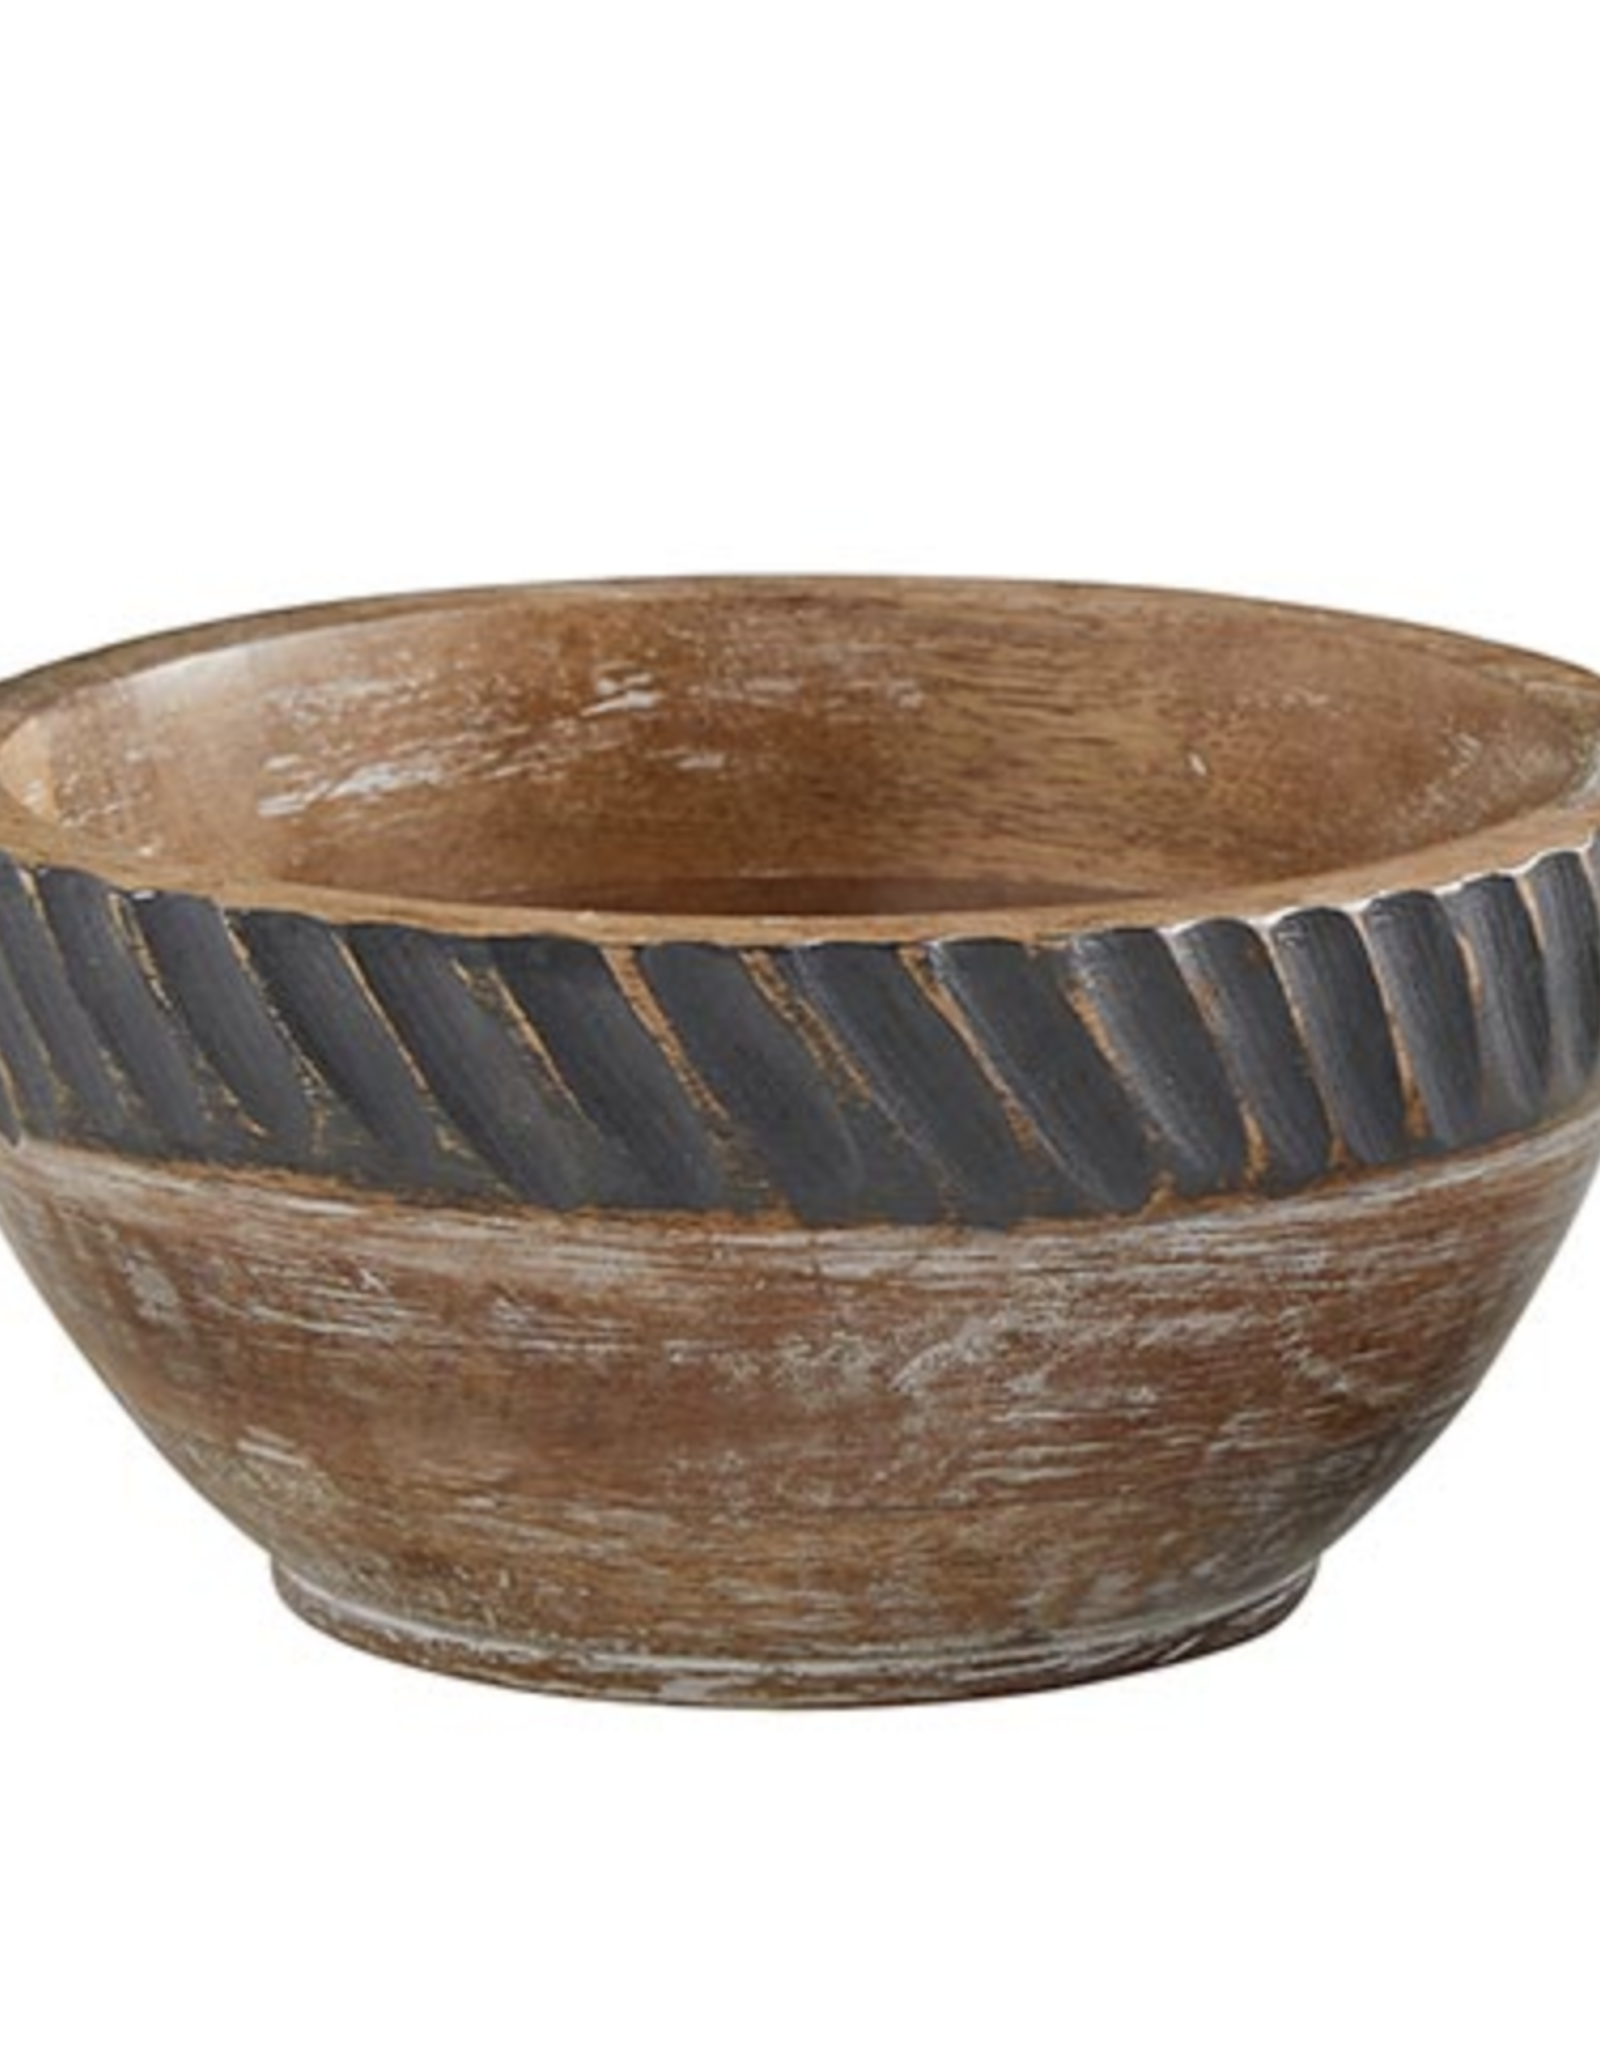 47 &Main Carved Wooden Bowl -large